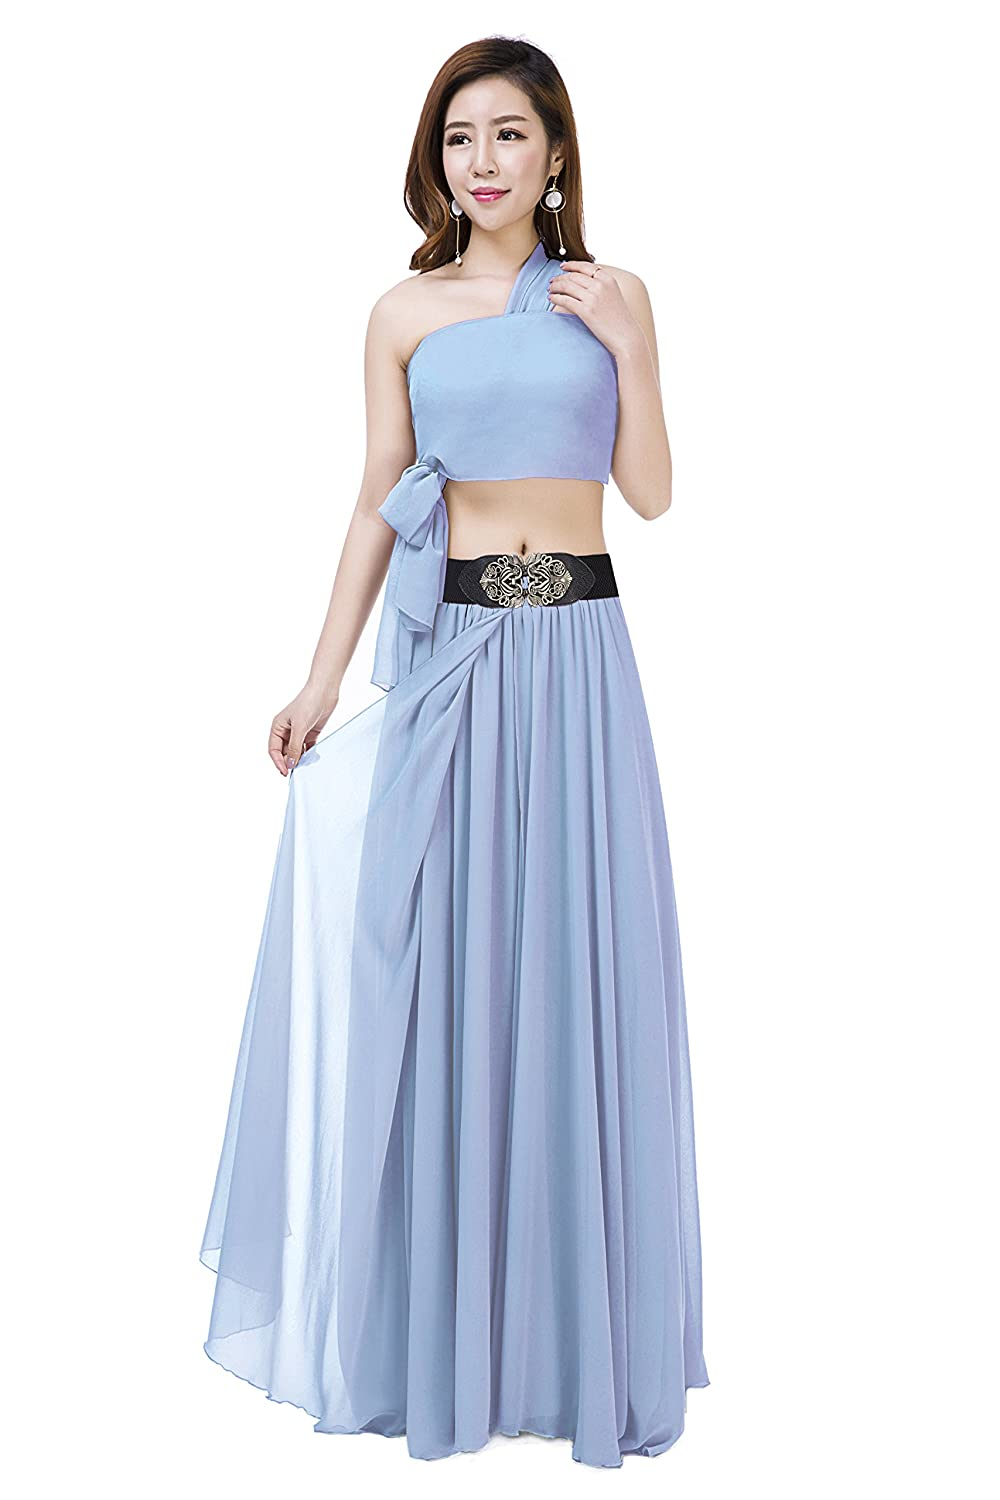 40b045fb68 Heavy Long Skirts Online